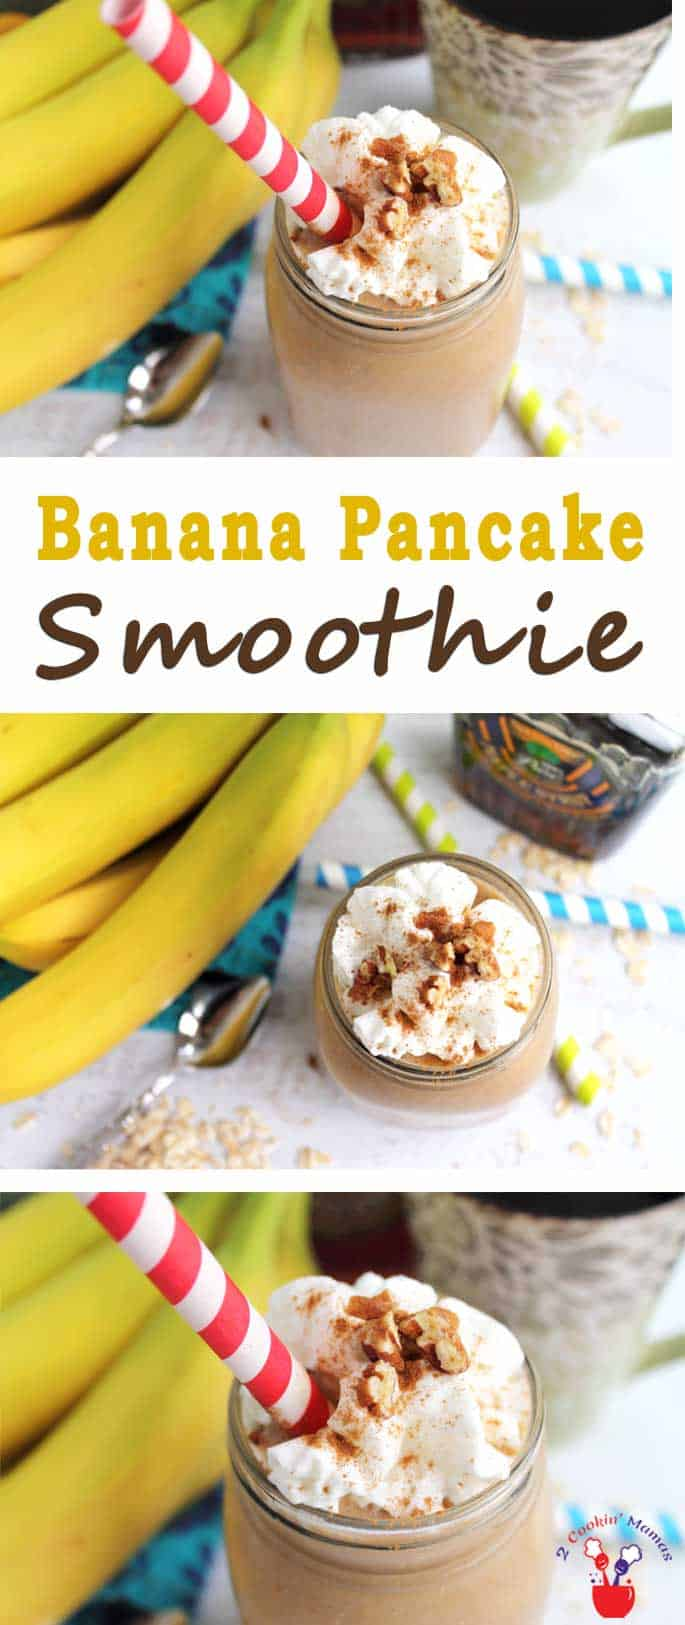 A healthy breakfast to start your day with the taste of pancakes. This Banana Pancake Smoothie is full of protein + a healthy dose of wake-me up coffee. #recipe #smoothie #healthy